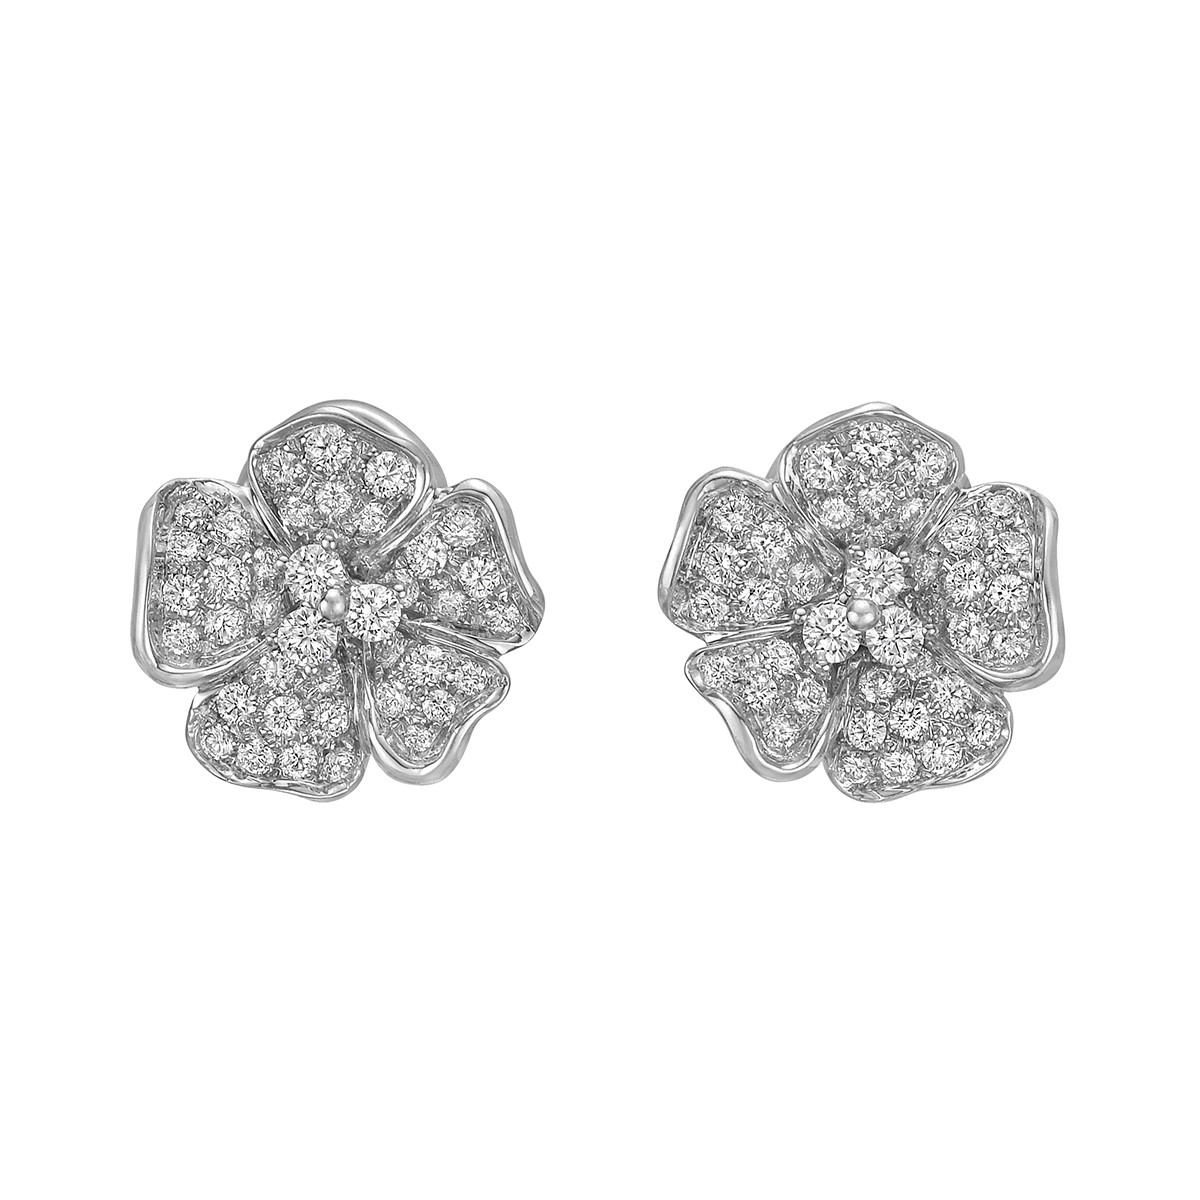 18k White Gold & Diamond Flower Earrings